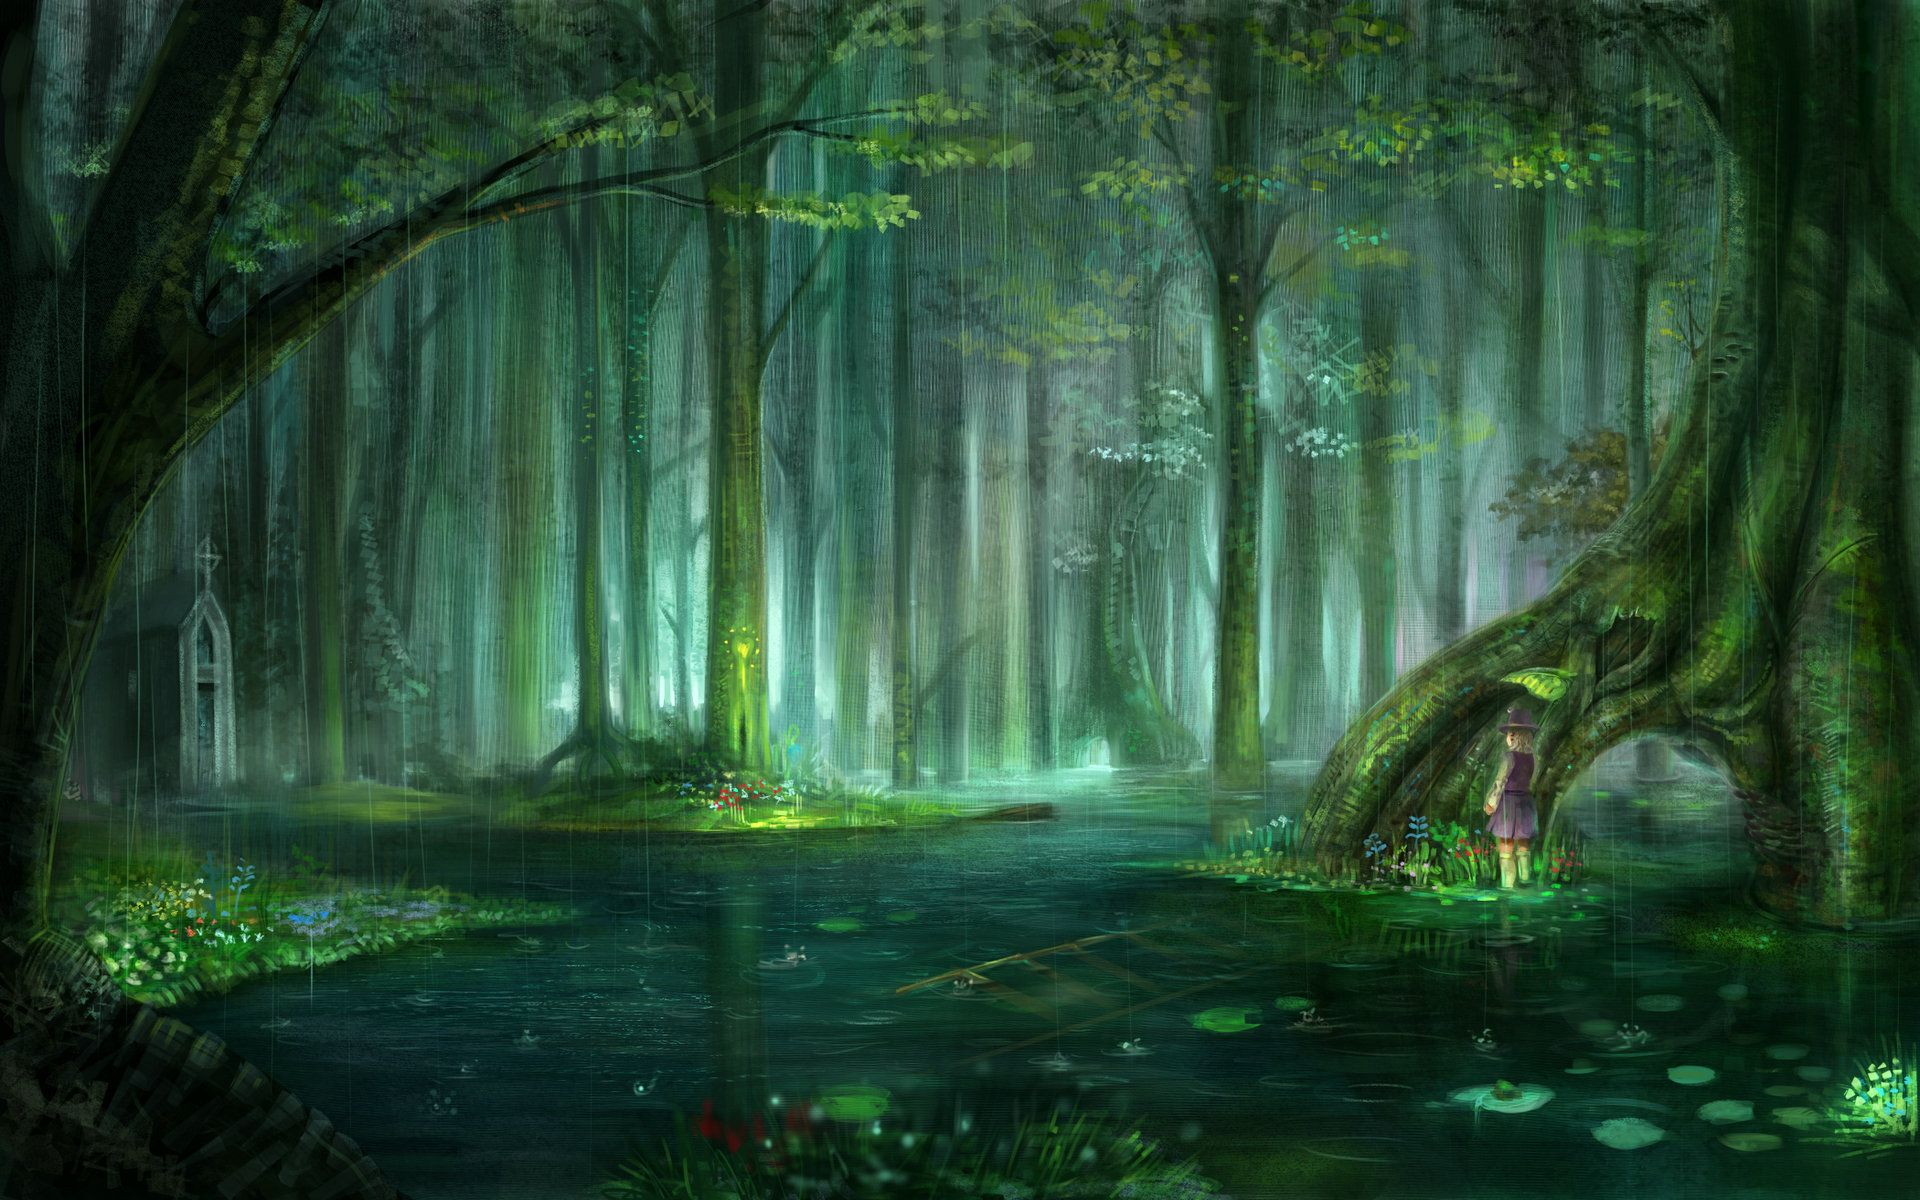 Free Download Wallpapers For Enchanted Forest Background